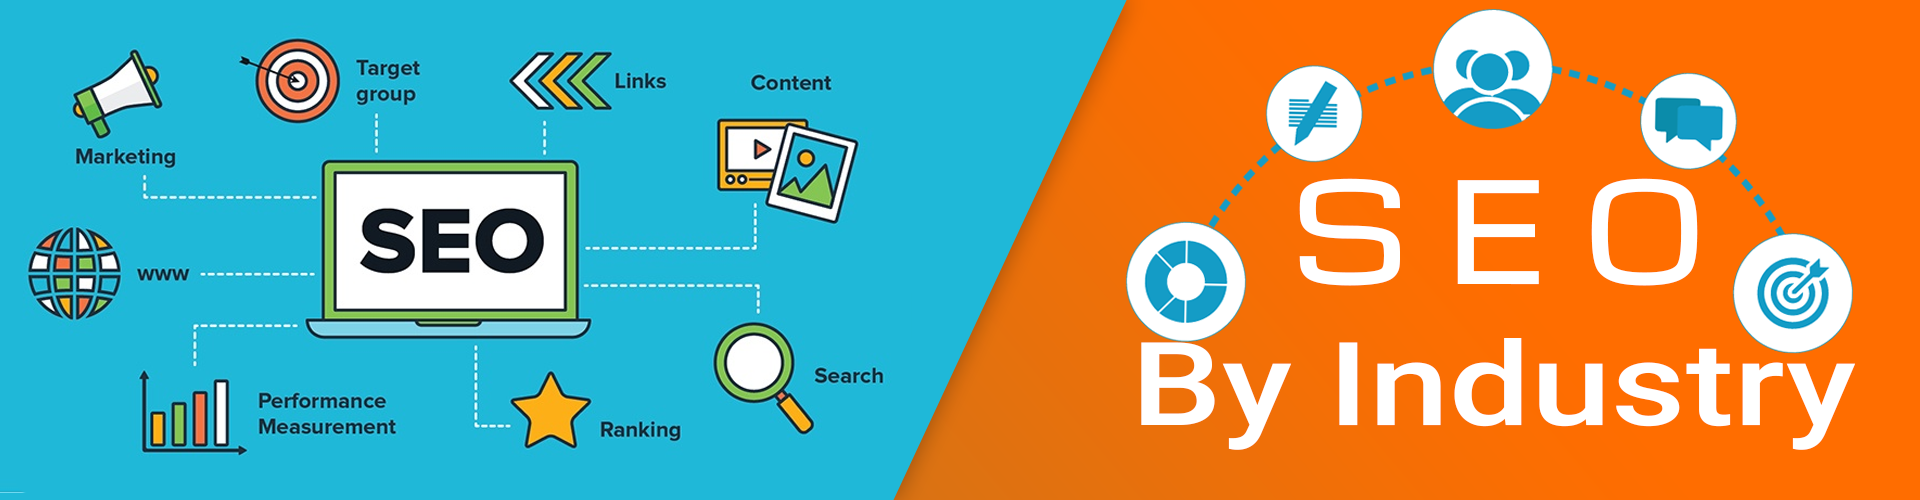 2Pm Bst To Aest outsource seo services india, travel seo services delhi india